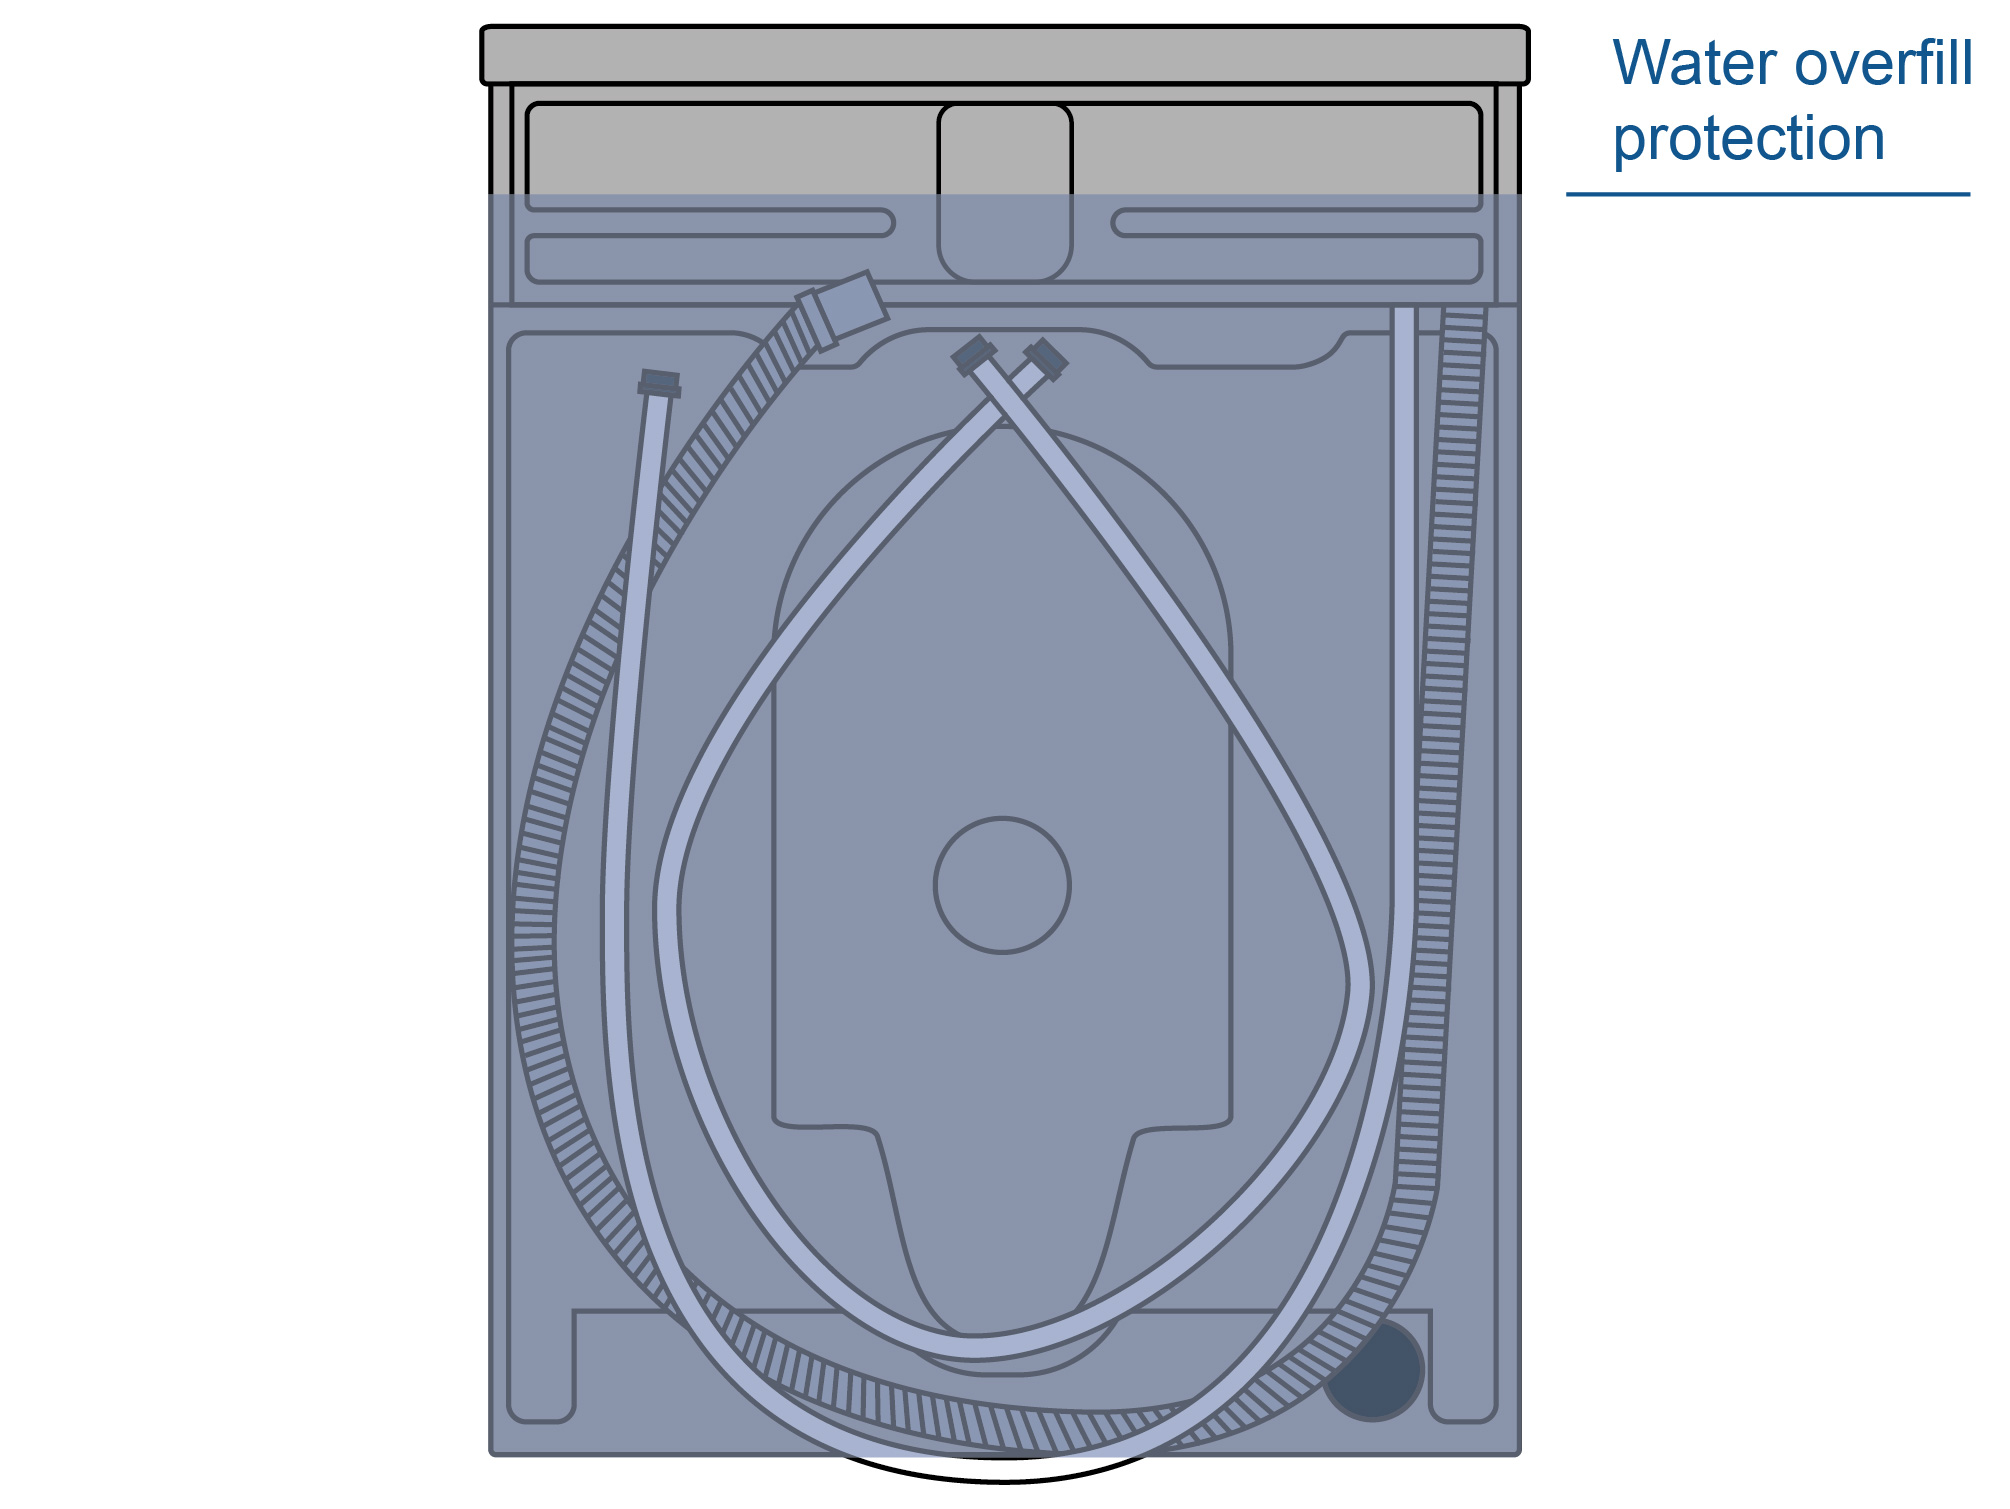 Illustration of Water Overfill Protection